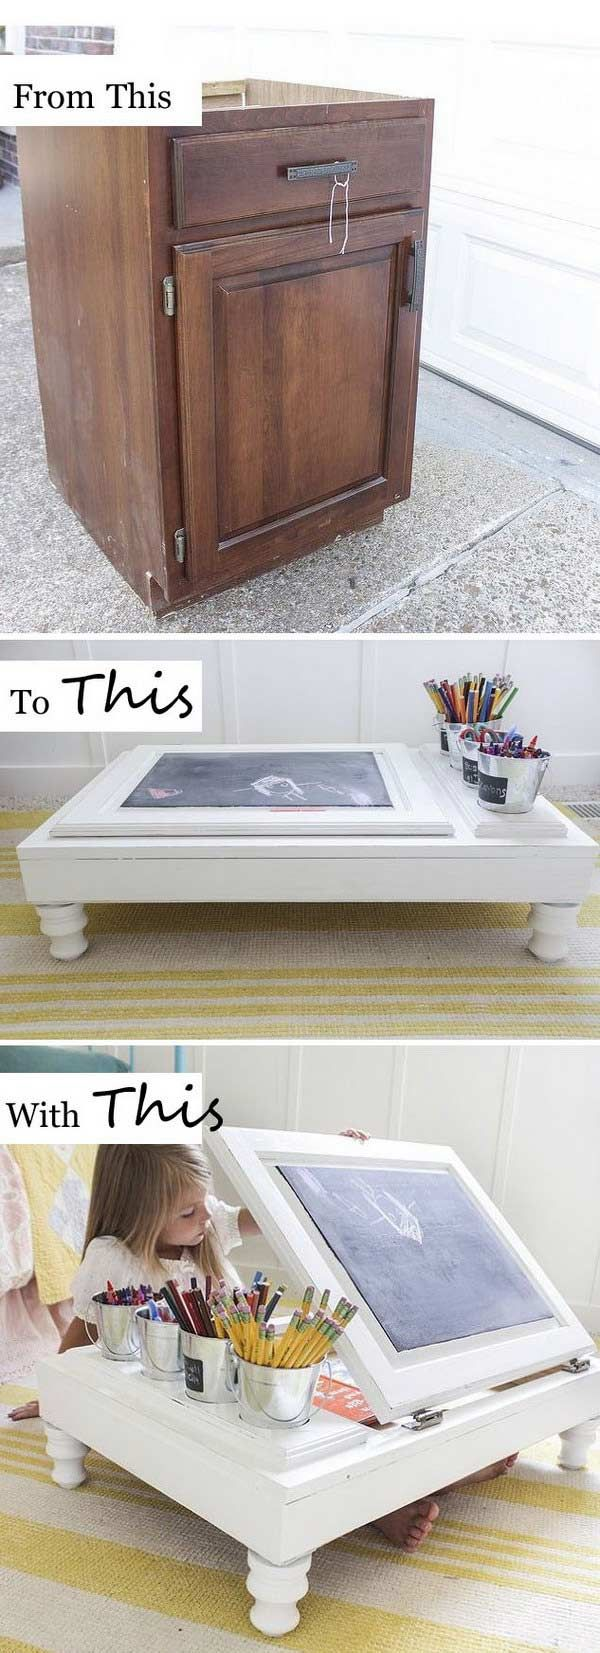 Child's Desk Rebuilt From a Kitchen Cabinet - Awesome and Low-budget Ways To Re-purpose Old Furniture